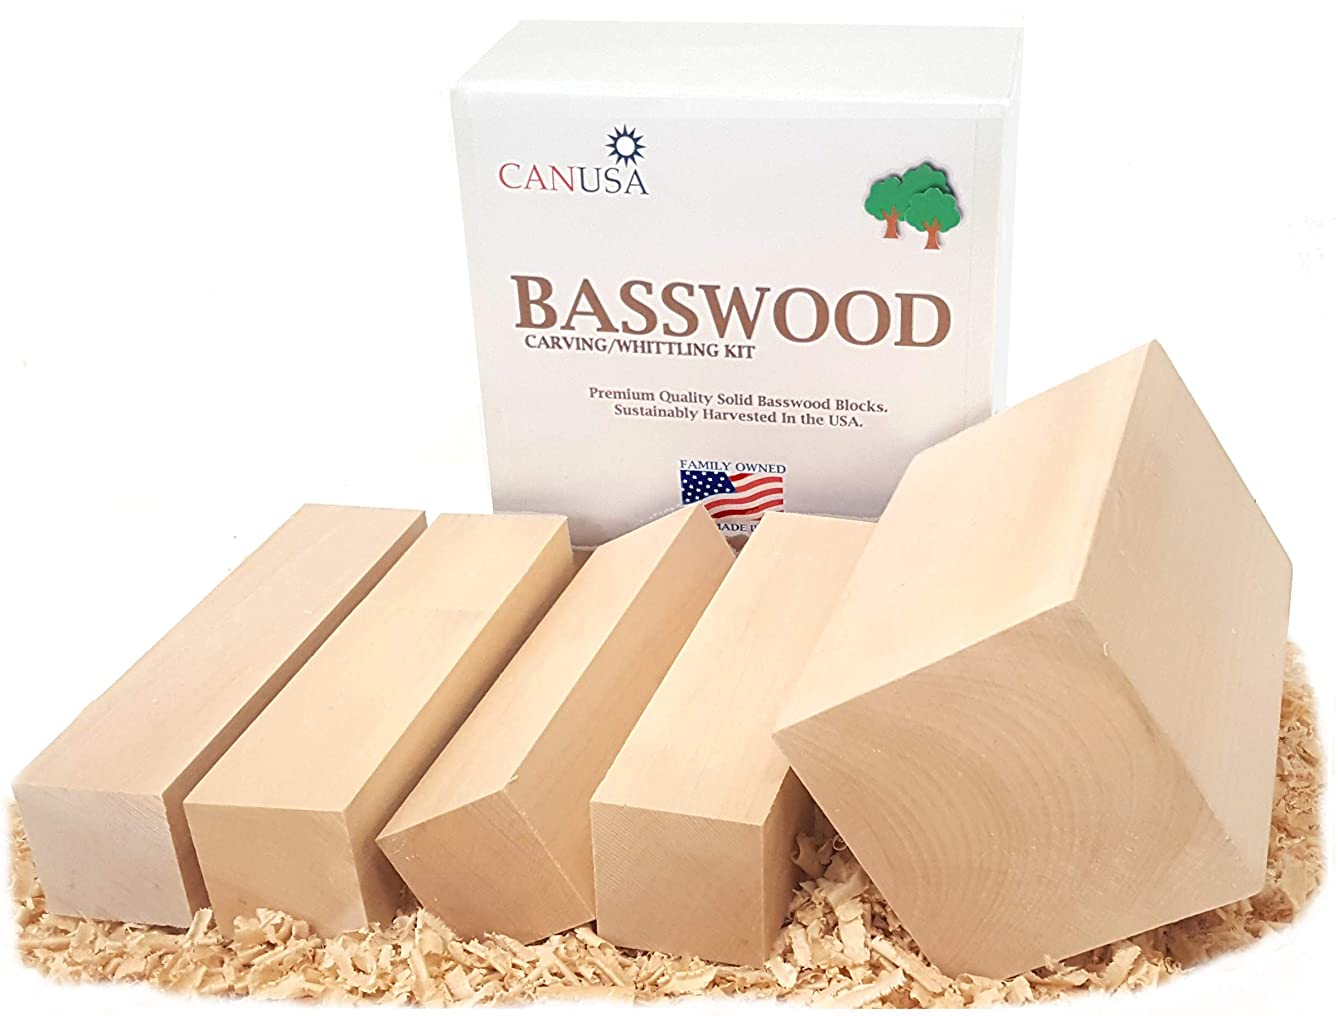 Best Value Basswood Beginners KIT. 1/3 More Wood Than Other Kits! Premium Unfinished Carving/Whittling Wood Blocks for Kids or Adults, Beginner to Expert.